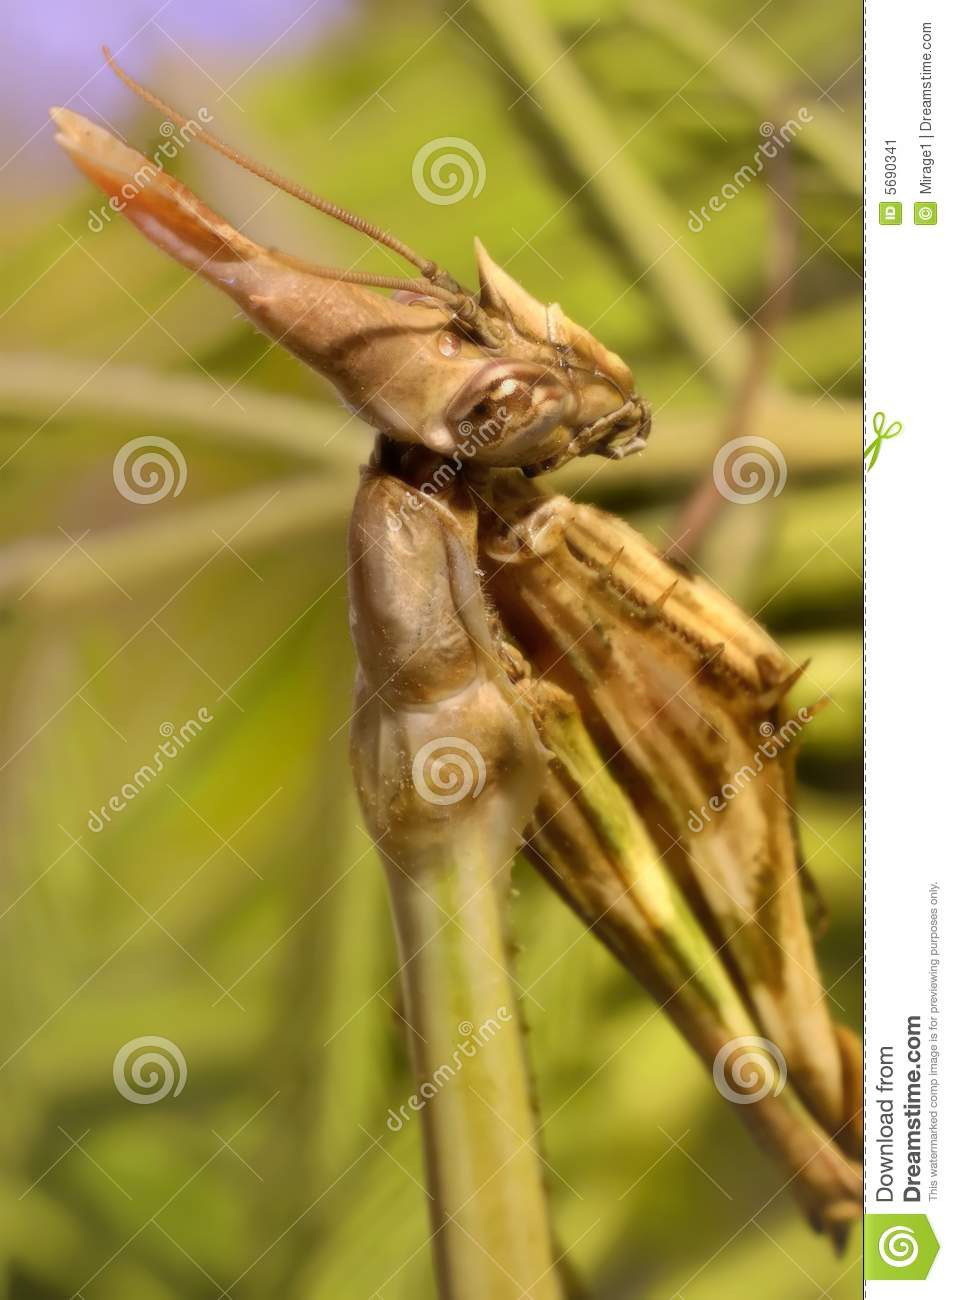 Praying Mantis Praying